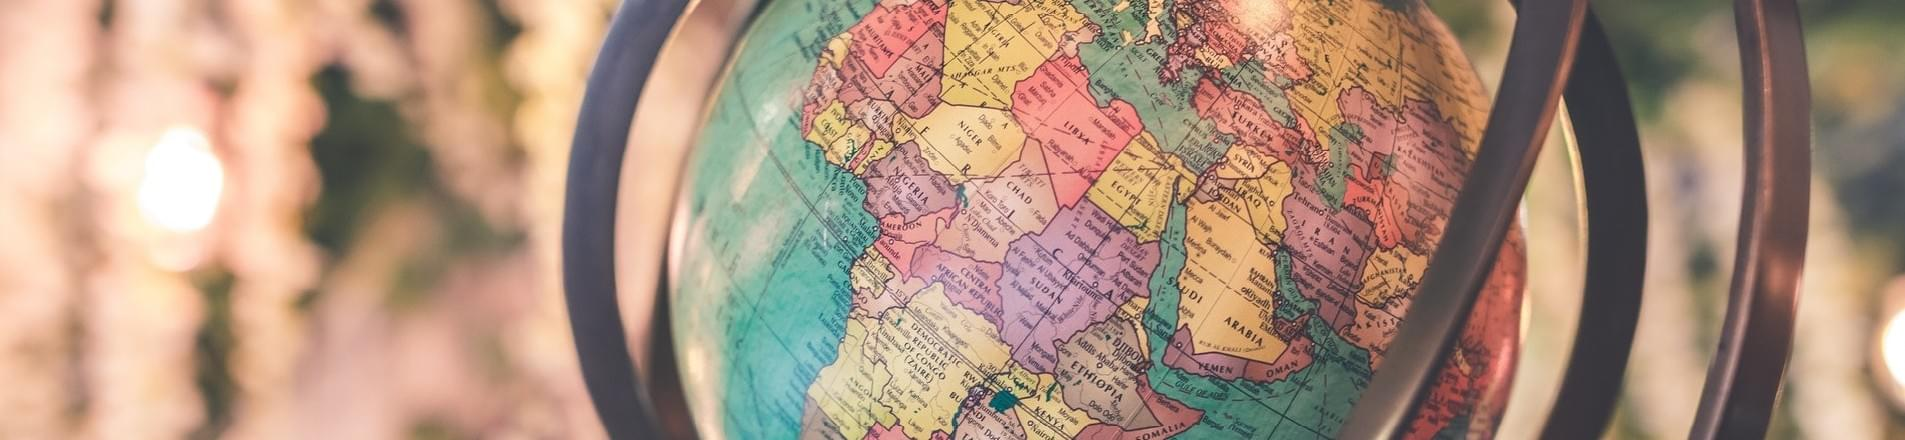 Placing marketing diversity on the map